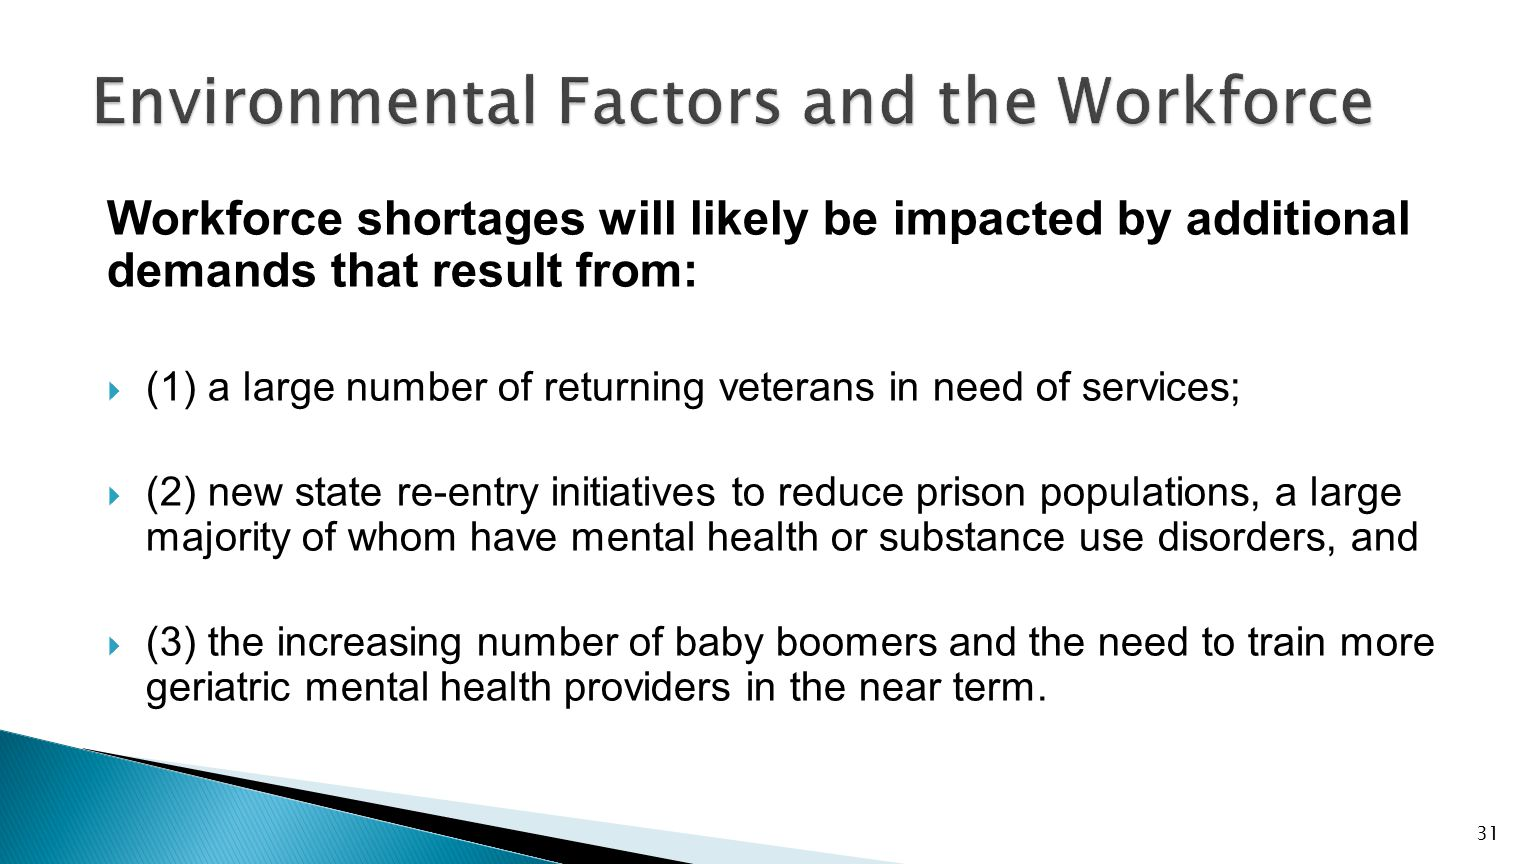 Workforce shortages will likely be impacted by additional demands that result from:  (1) a large number of returning veterans in need of services;  (2) new state re-entry initiatives to reduce prison populations, a large majority of whom have mental health or substance use disorders, and  (3) the increasing number of baby boomers and the need to train more geriatric mental health providers in the near term.